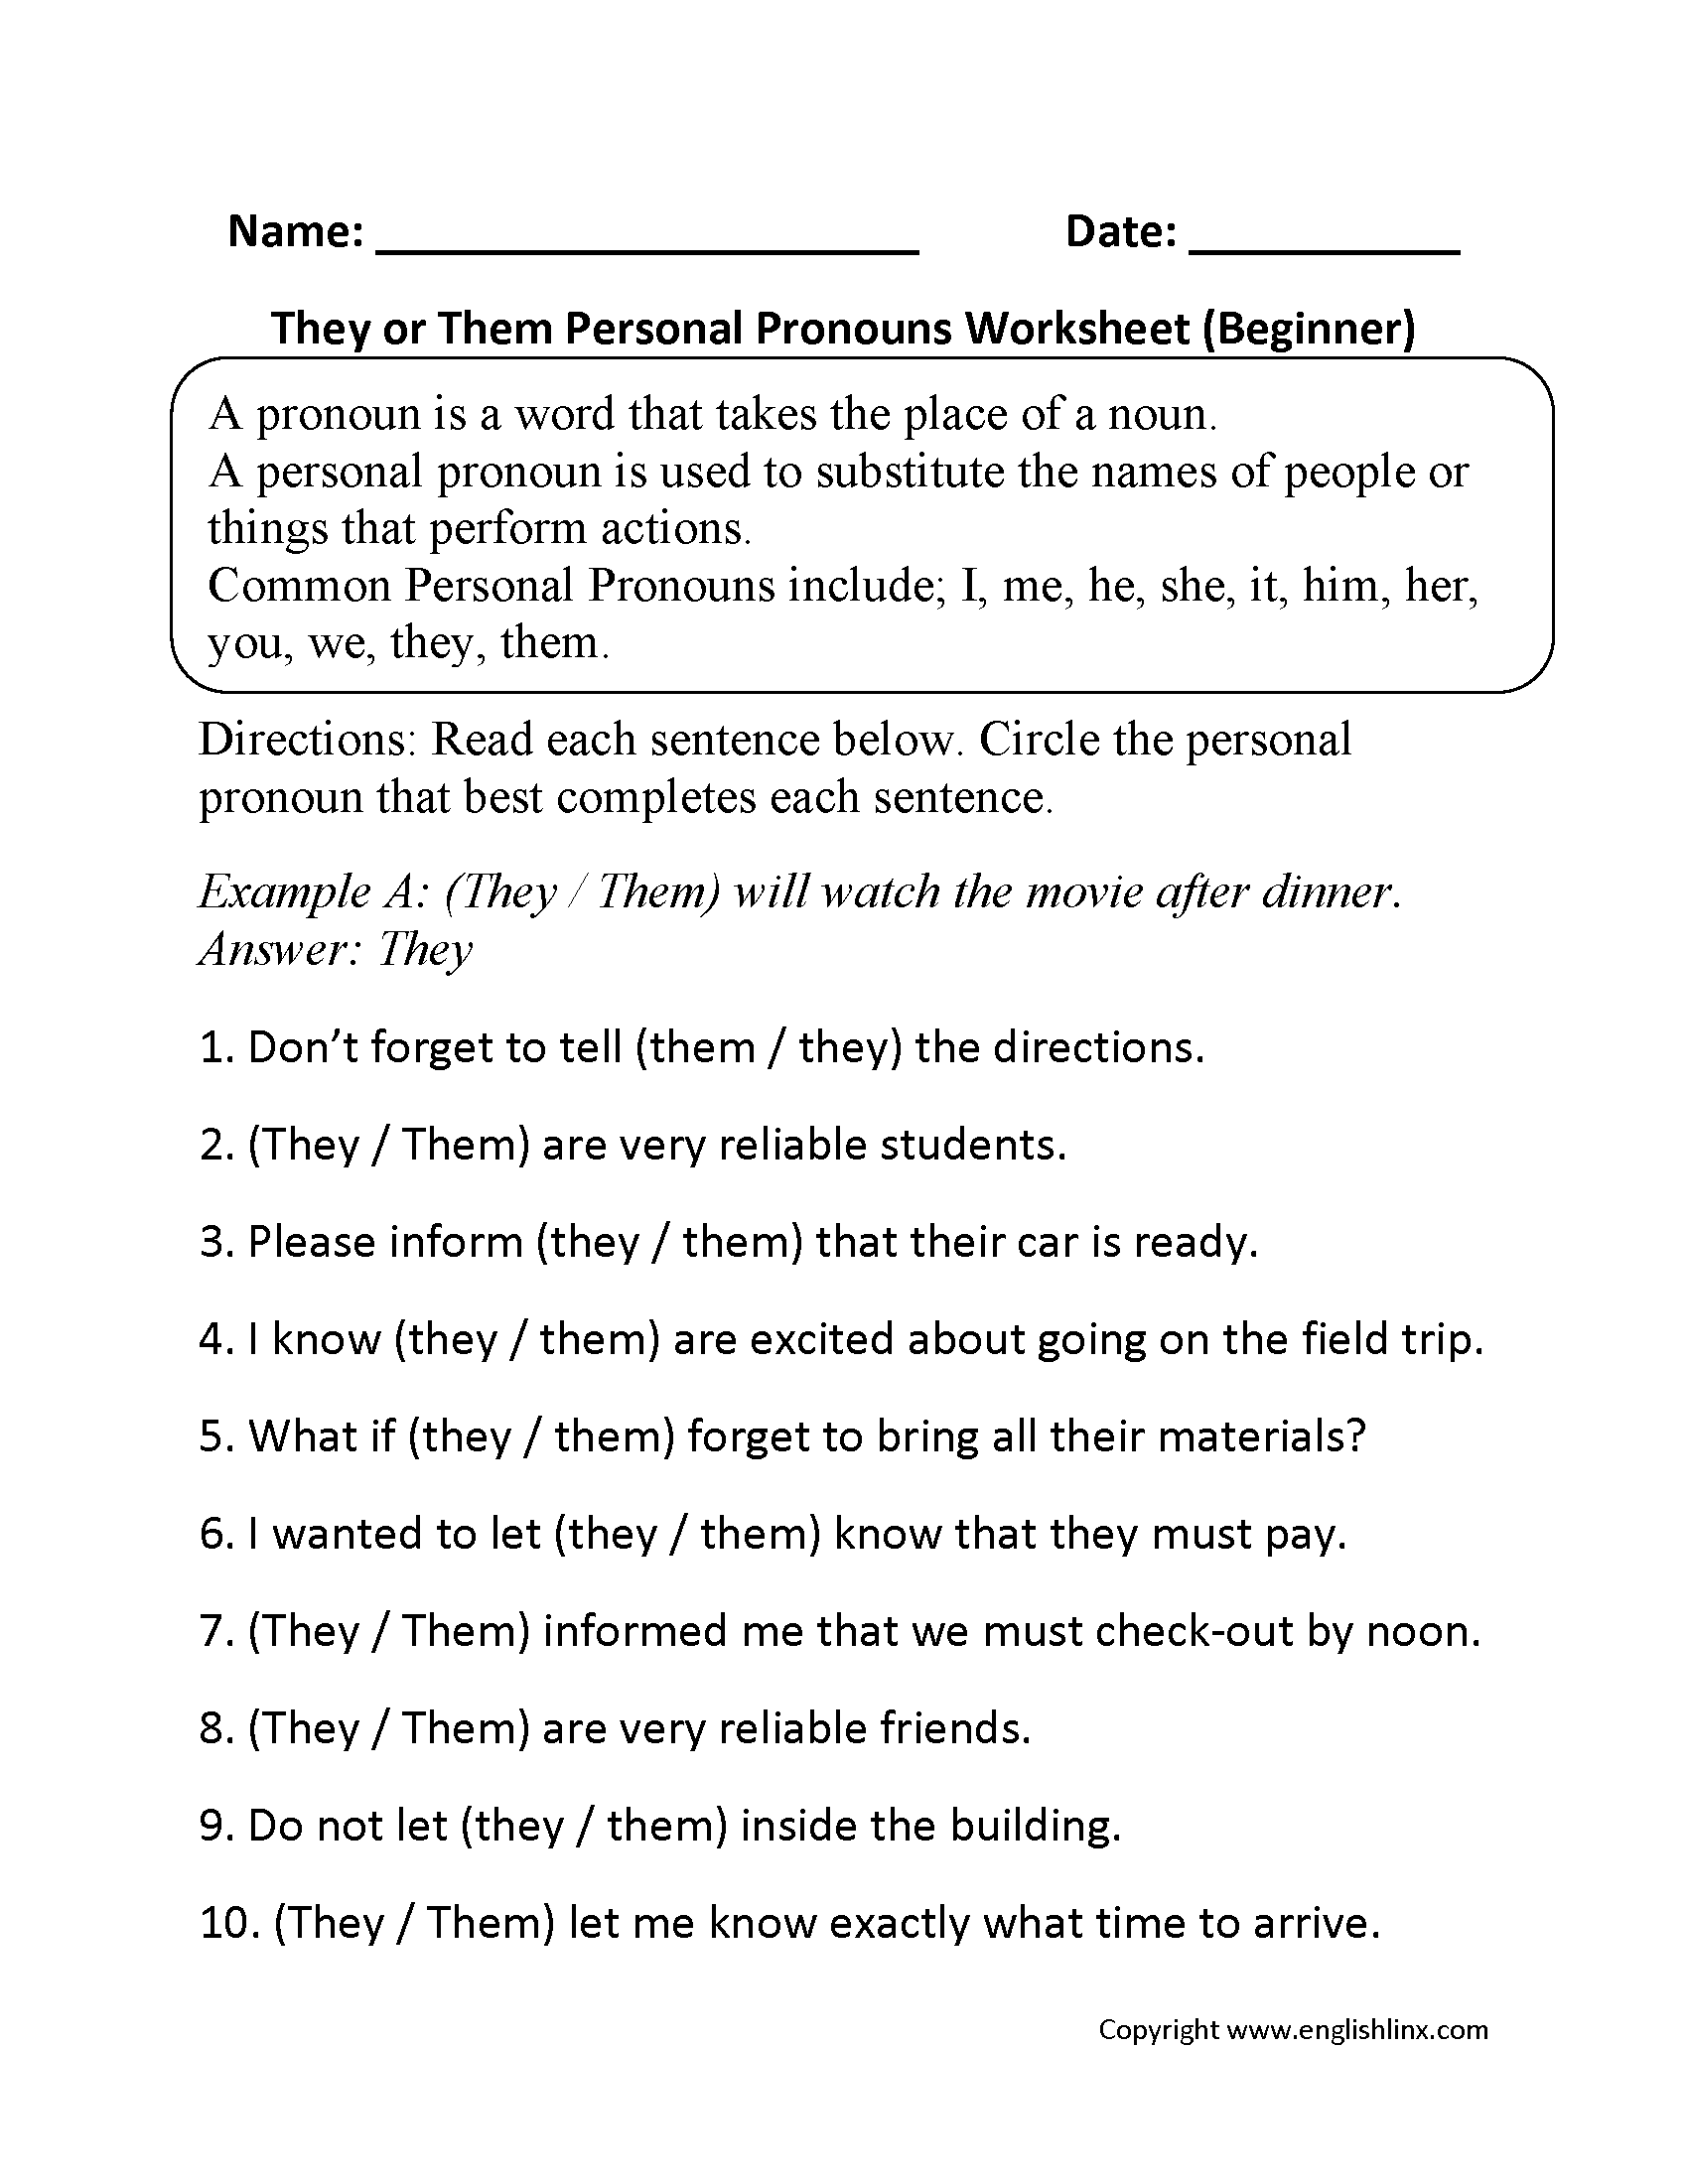 They or Them Personal Pronouns Worksheets Beginner | Birthday ...